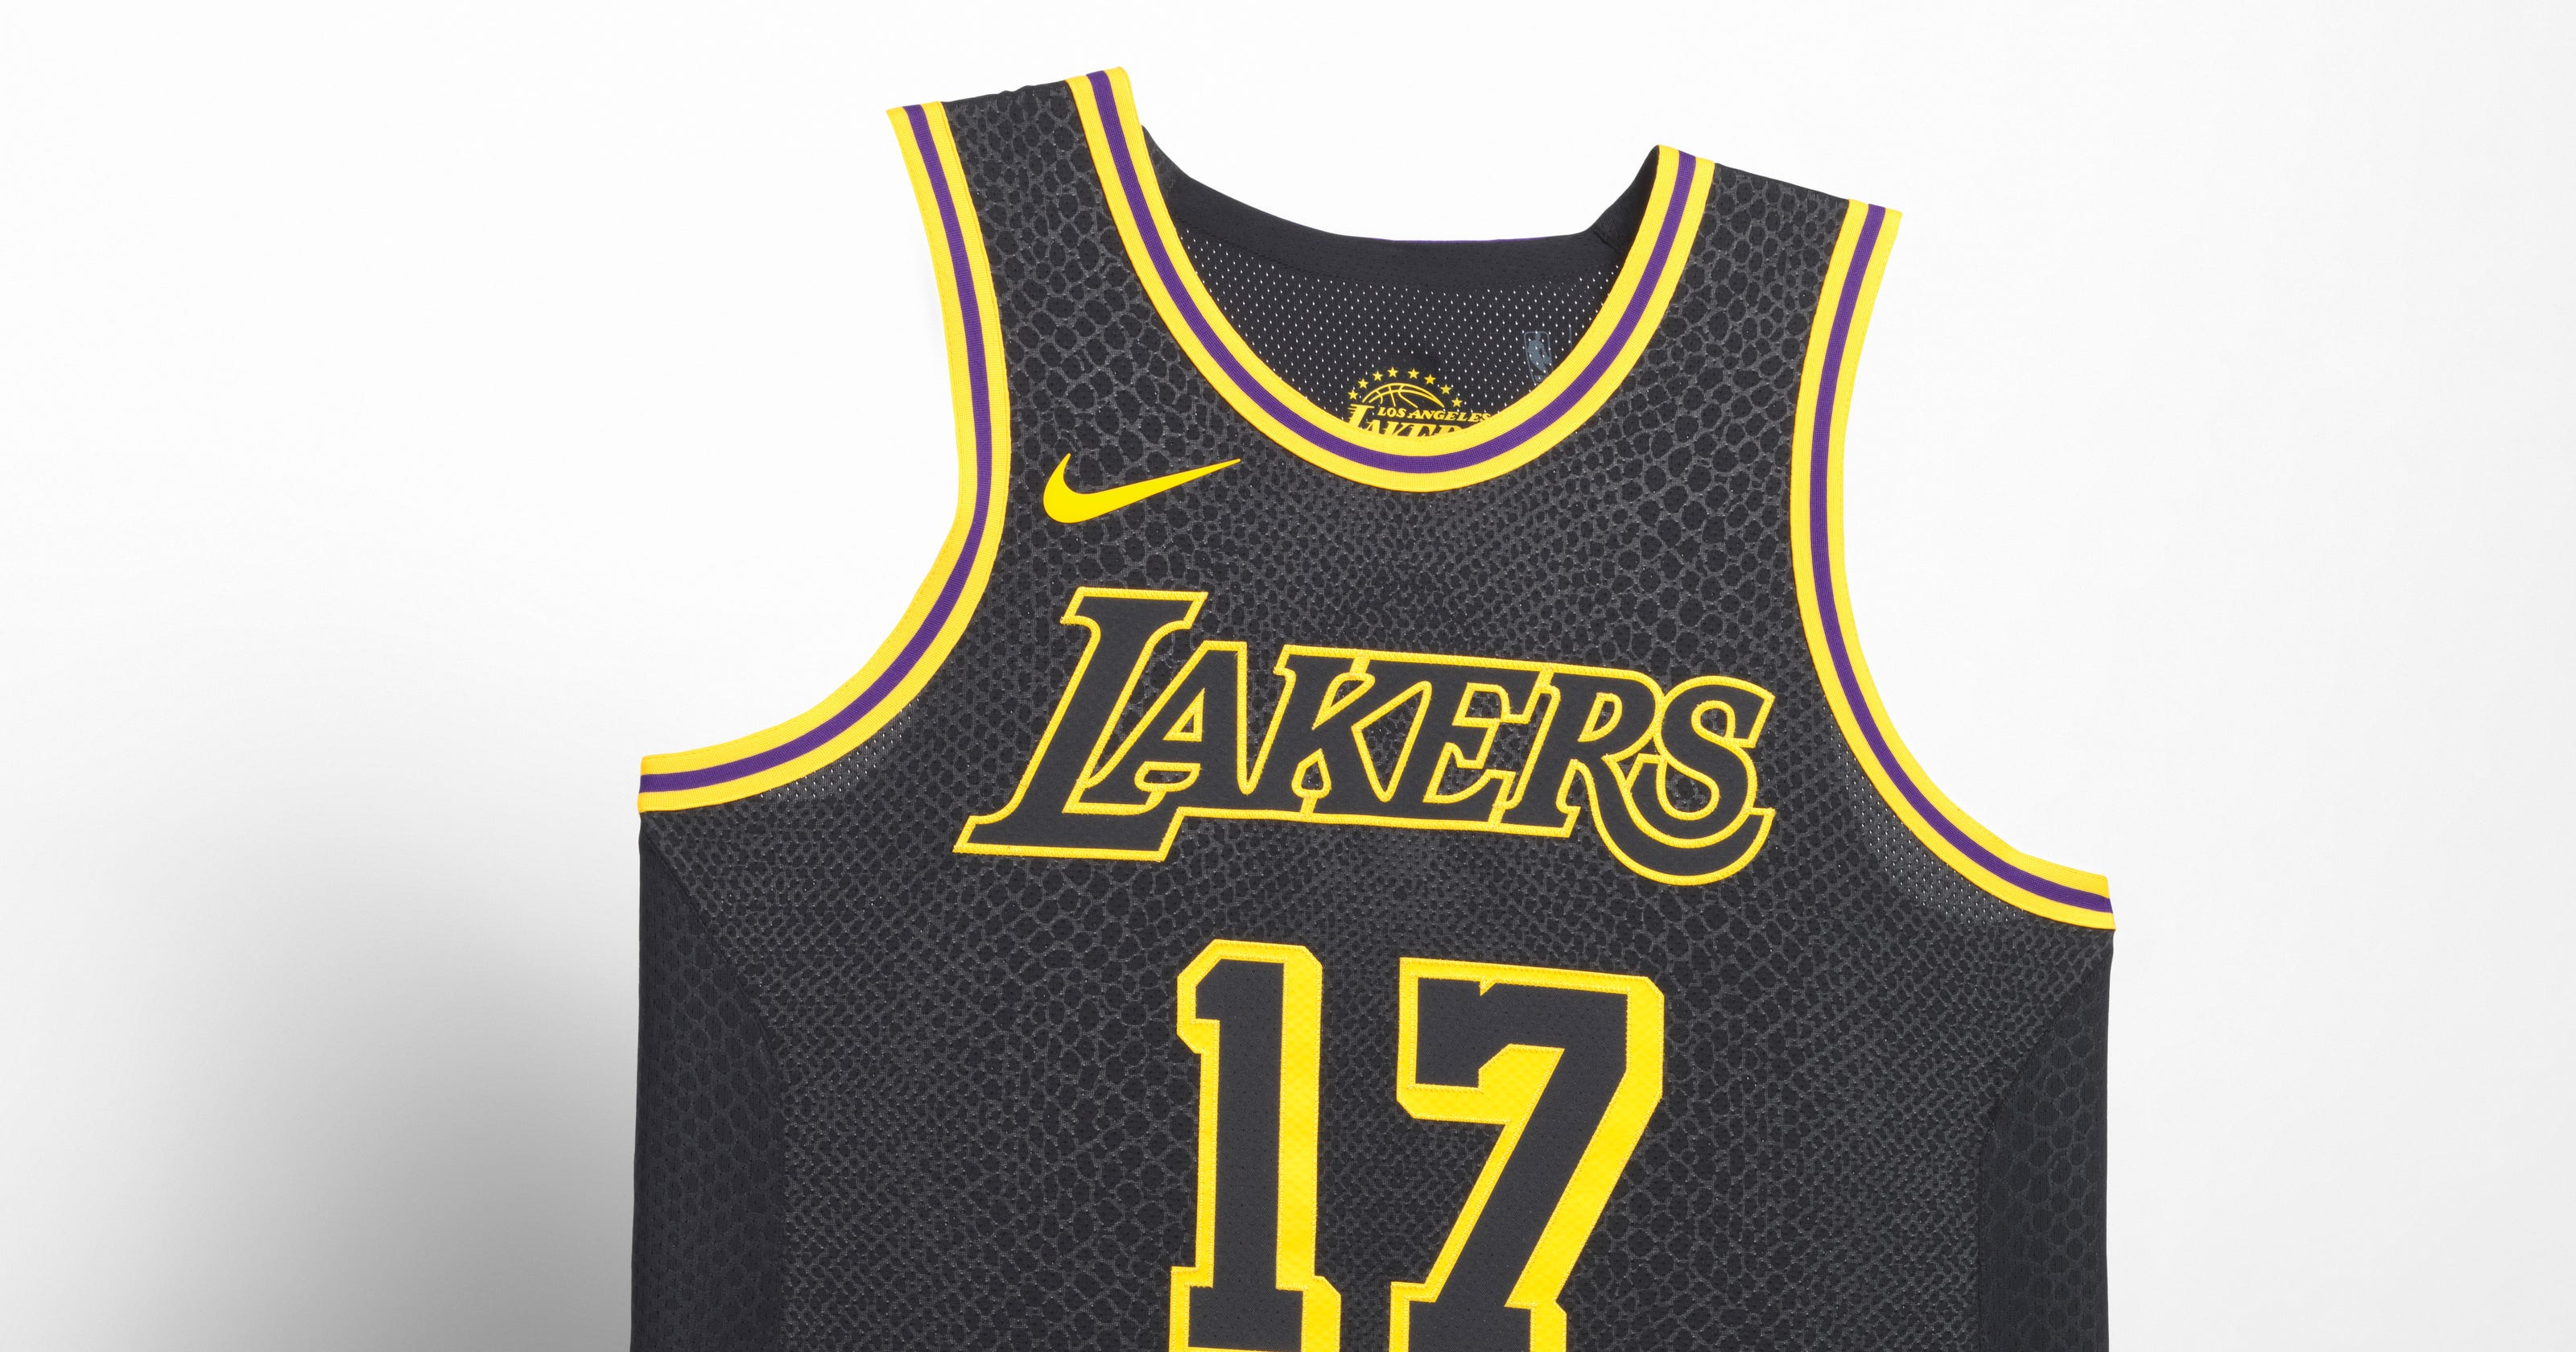 Nike NBA City Edition uniforms  The story behind the design process d07c736a7